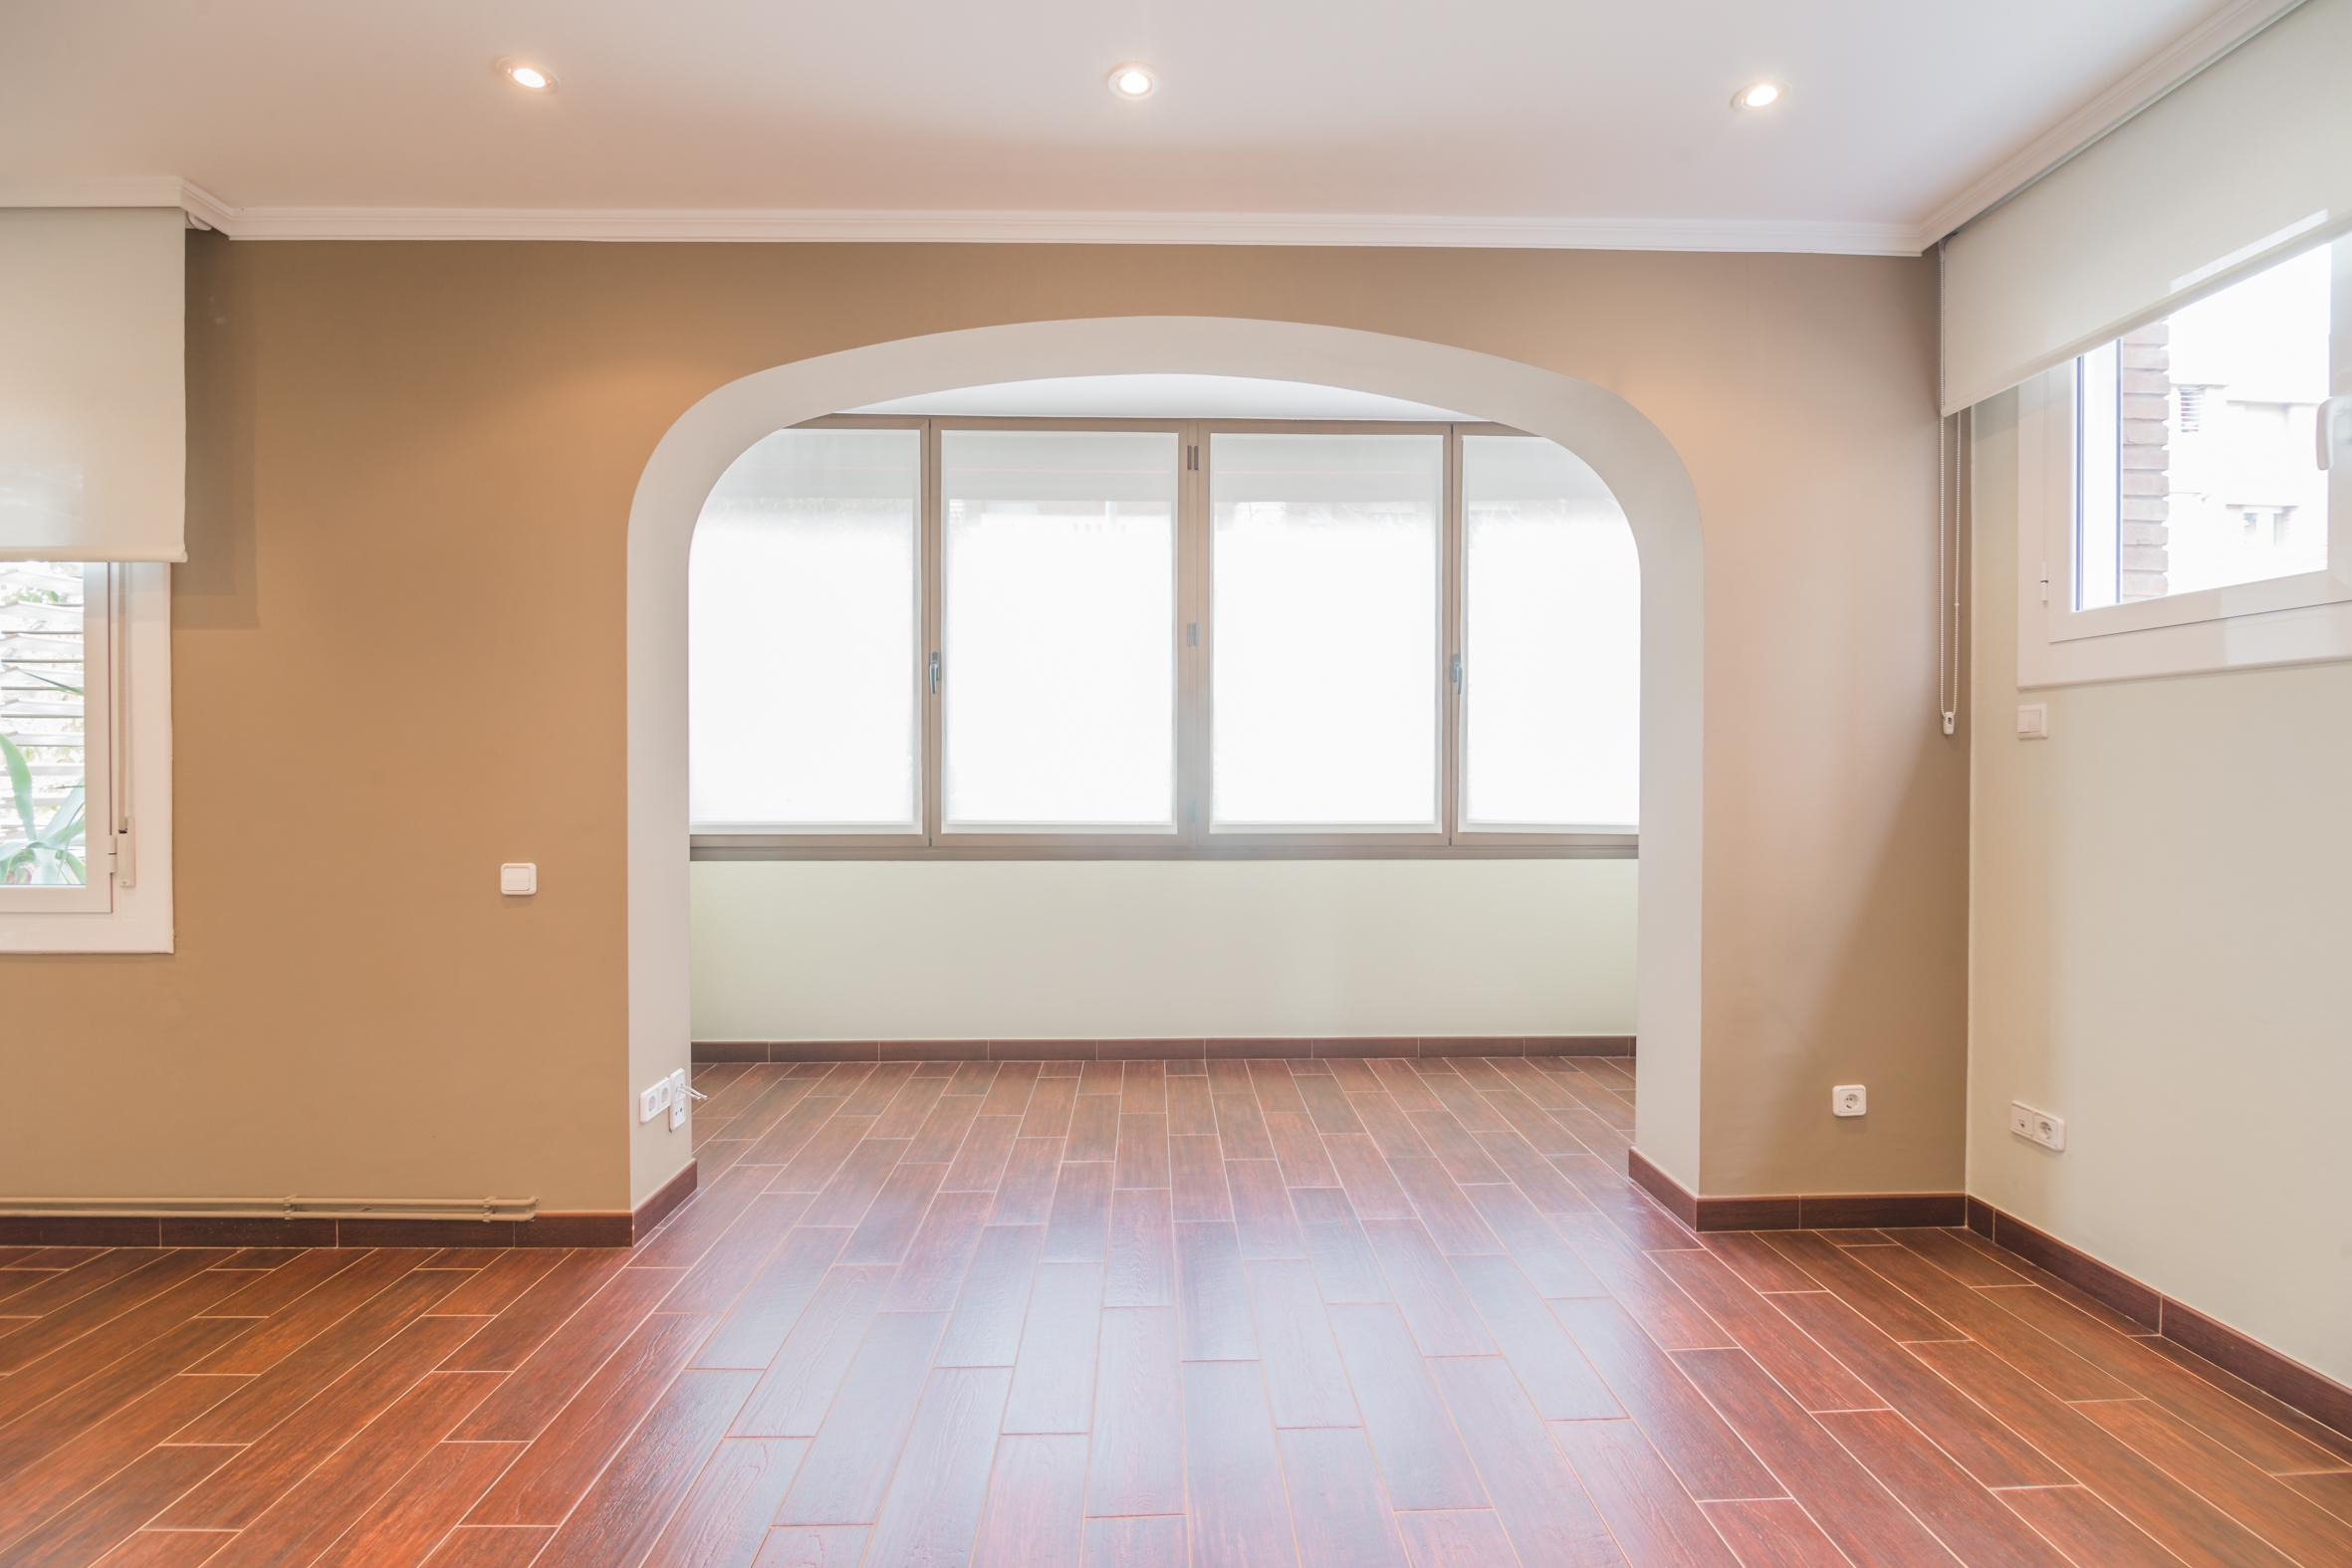 246902 Flat for sale in Les Corts, Pedralbes 9